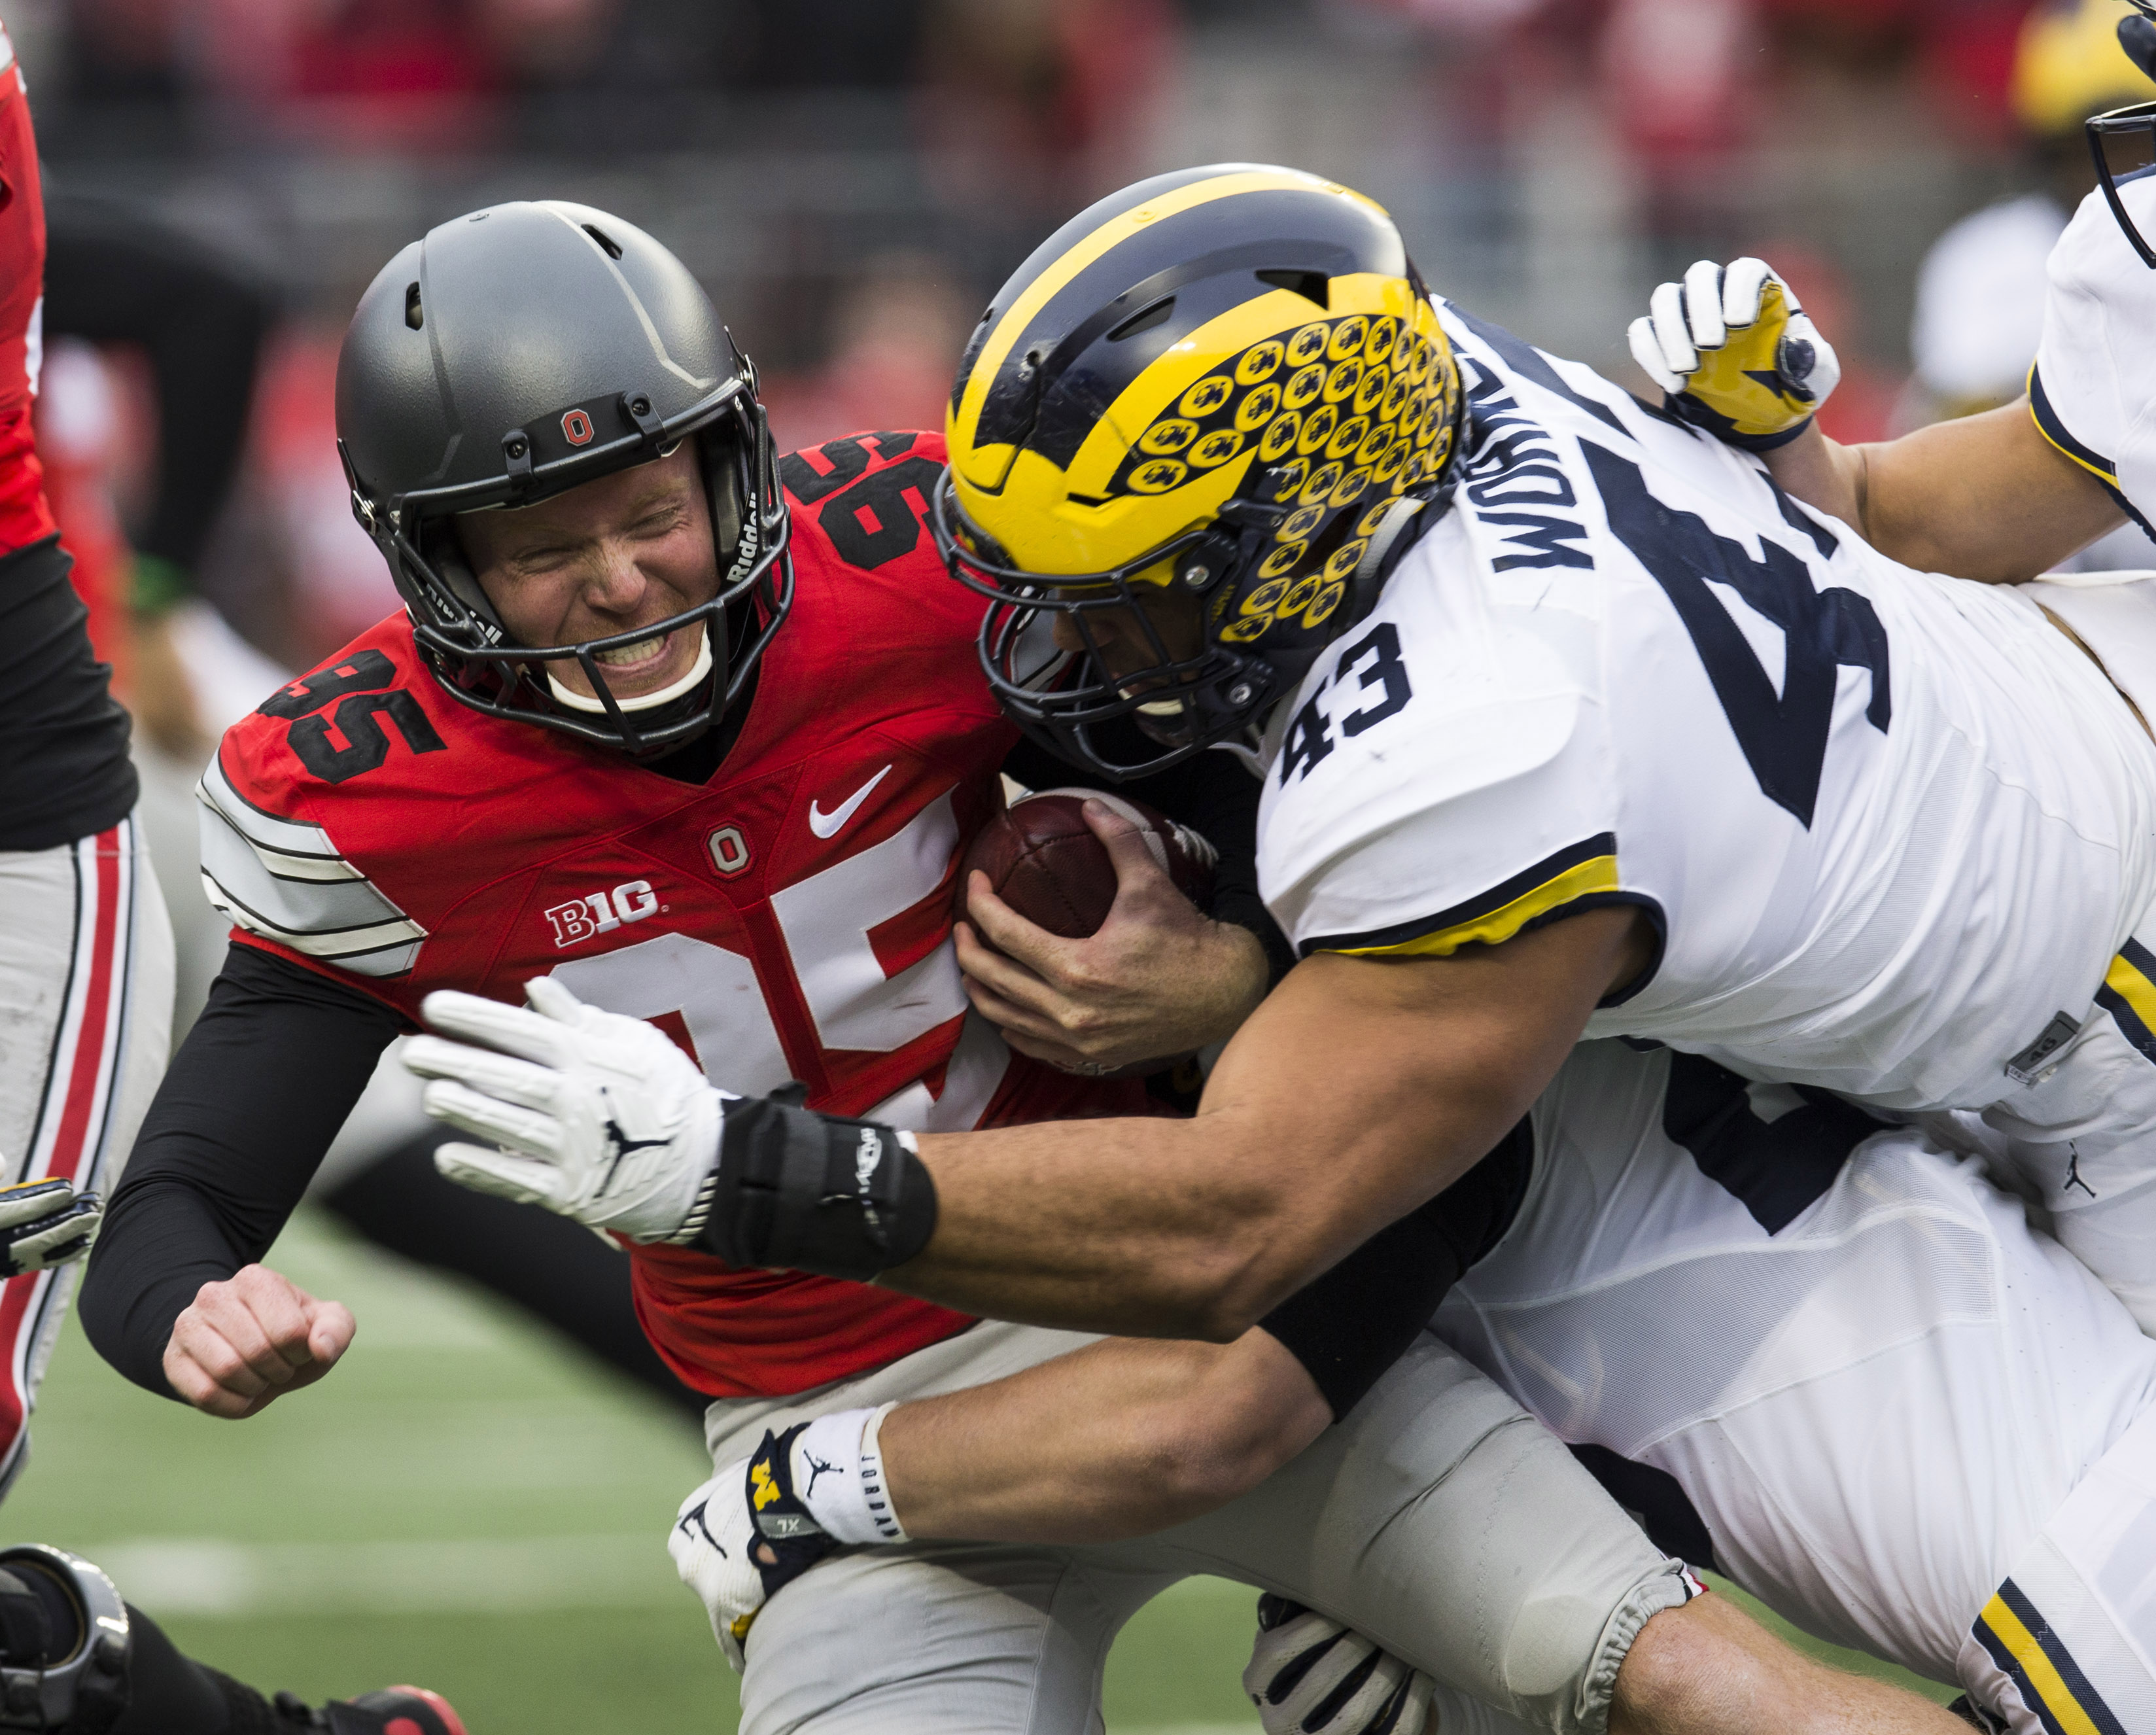 Nfl Draft 4 Michigan Football Players That Could Go On Day 2 Page 2